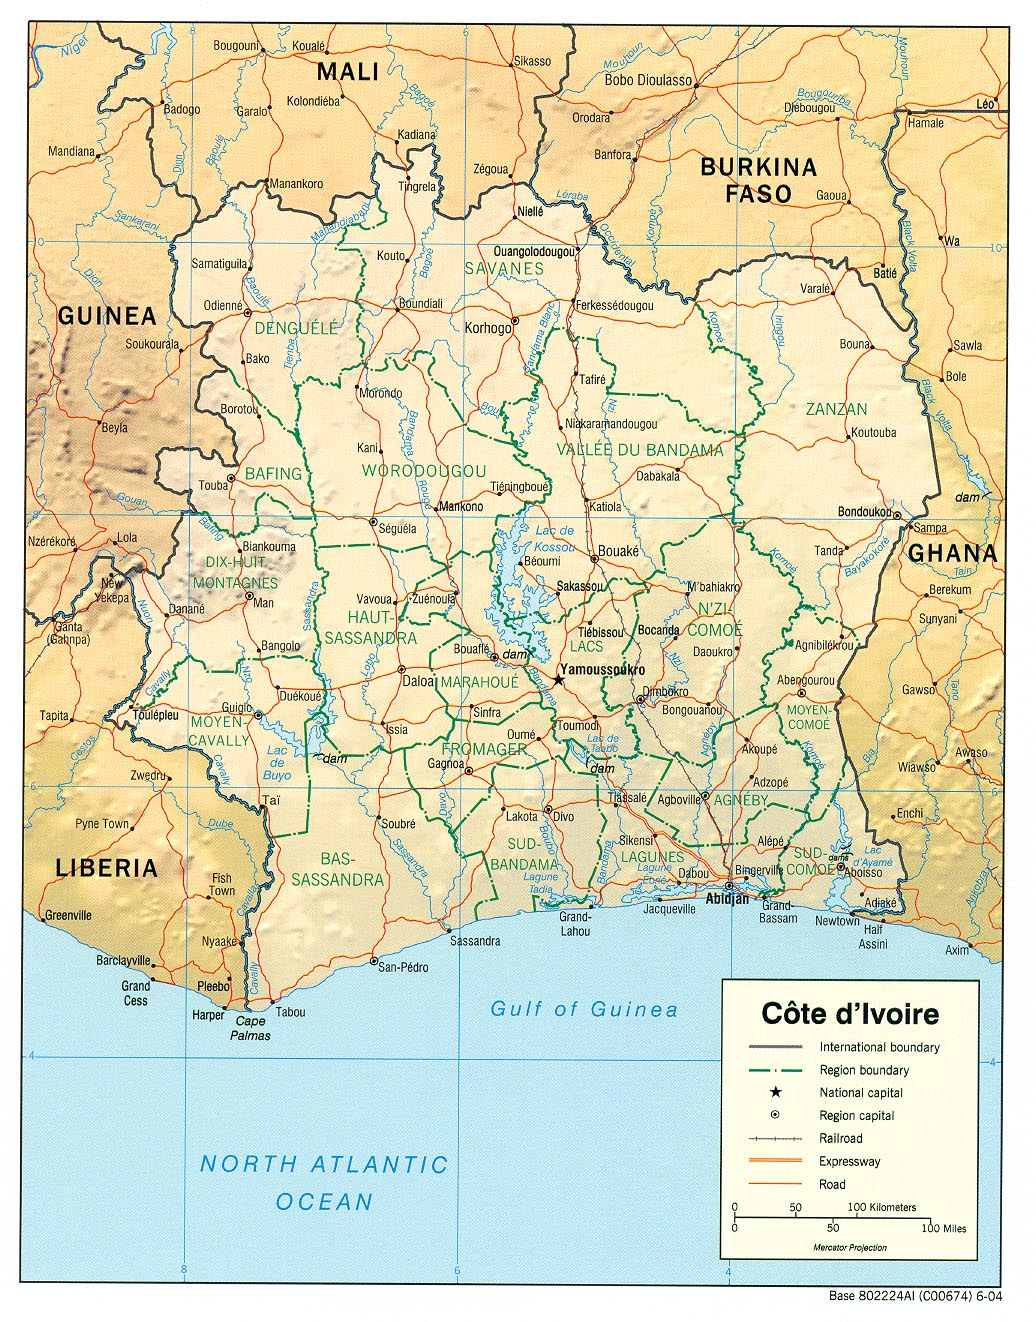 Cote d'Ivoire (Ivory Coast) Maps - Perry-Castañeda Map Collection on